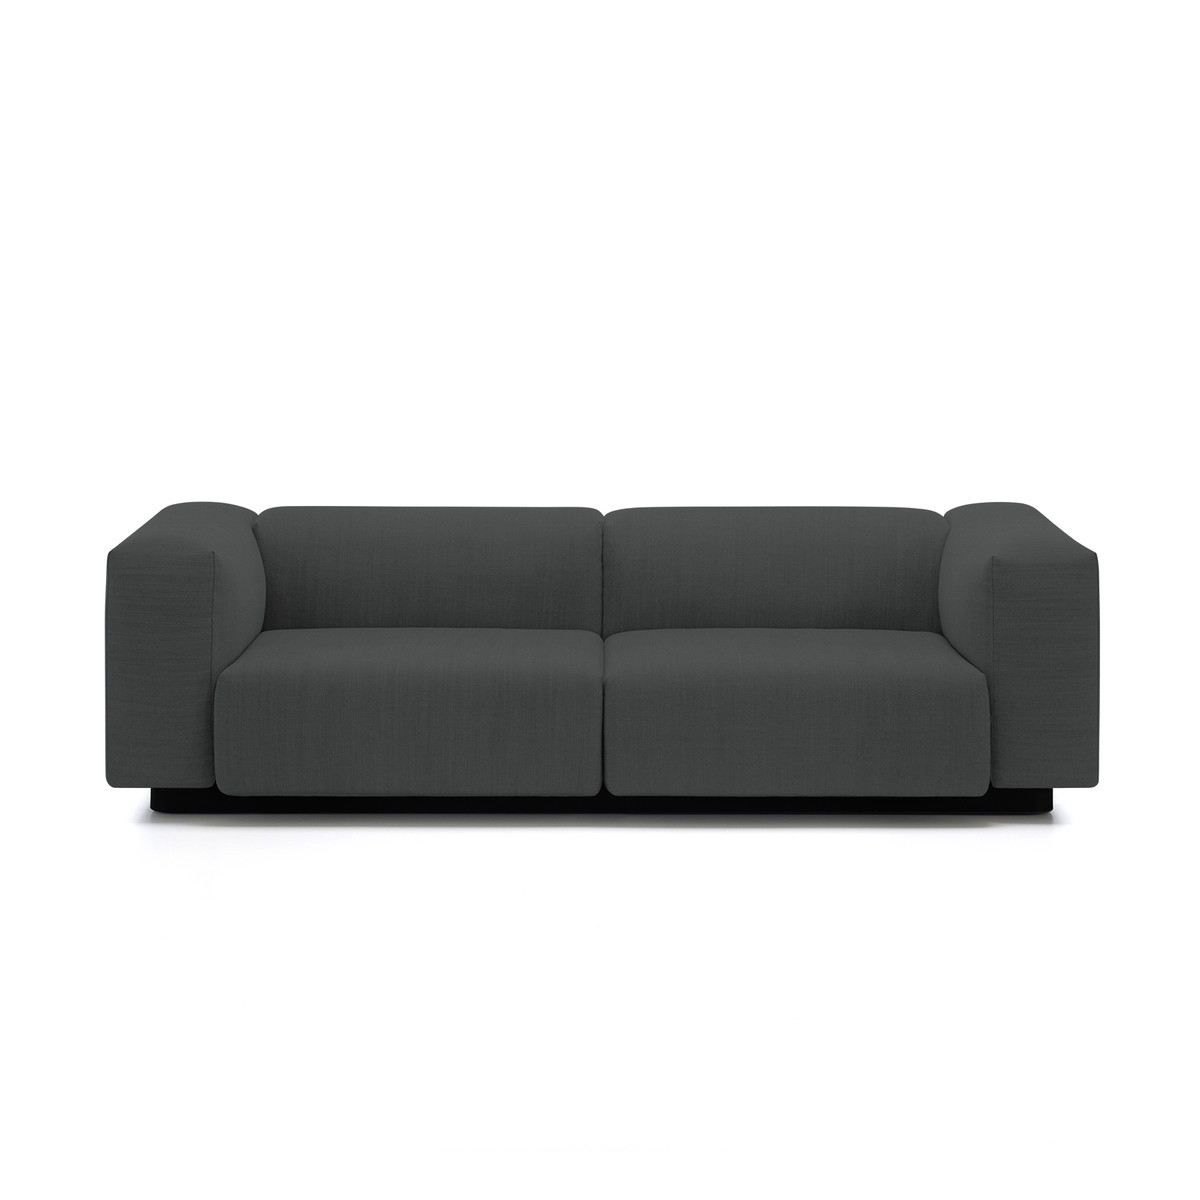 Soft Modular 2 Seater Sofa From Vitra In The Connox Shop With Regard To Soft Sofas (Image 9 of 10)